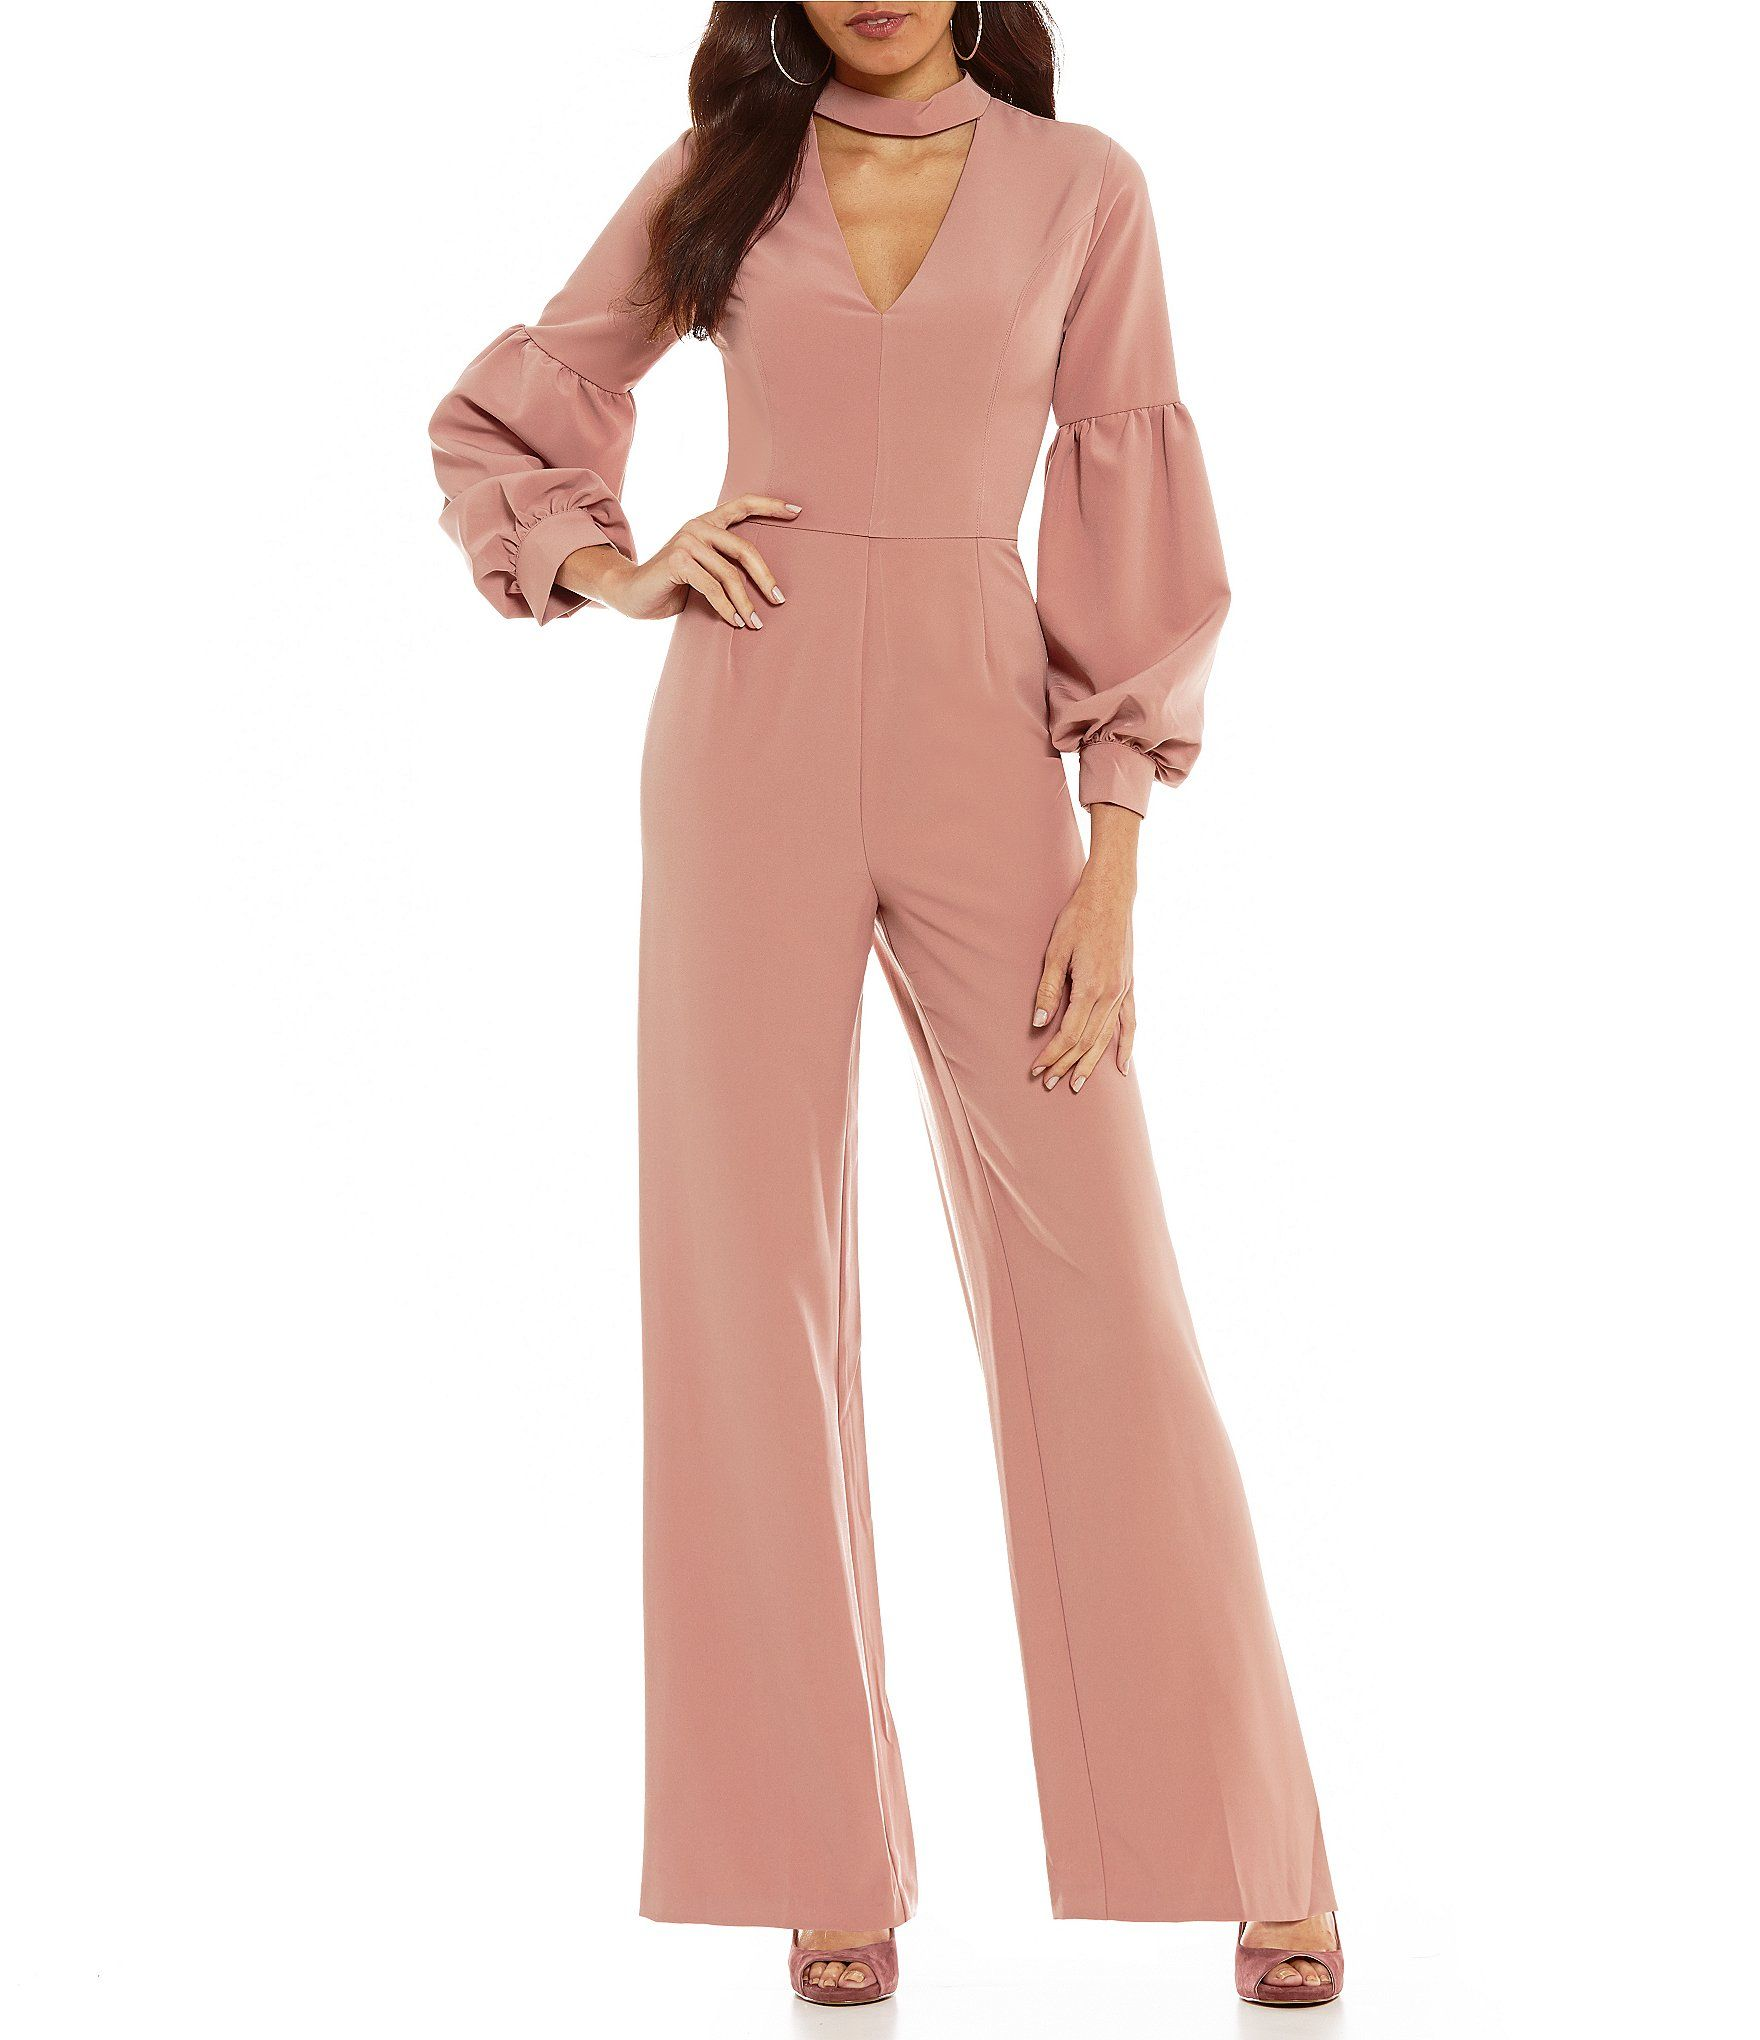 Shop For Gianni Bini Reese Choker Neck Bubble Sleeve Jumpsuit At